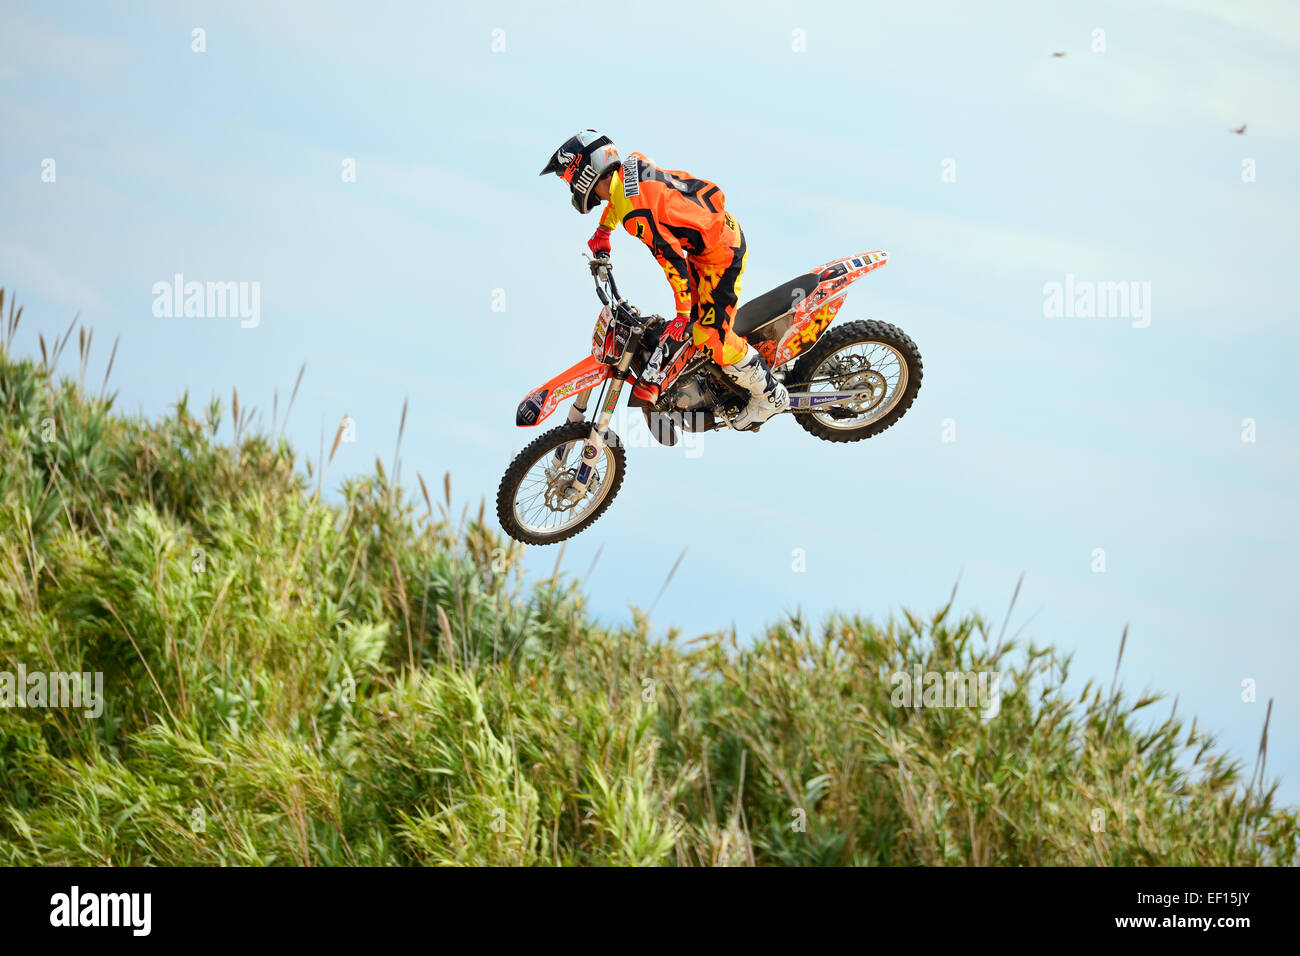 BARCELONA - JUN 28: A professional rider at the FMX (Freestyle Motocross) competition at LKXA Extreme Sports Barcelona - Stock Image